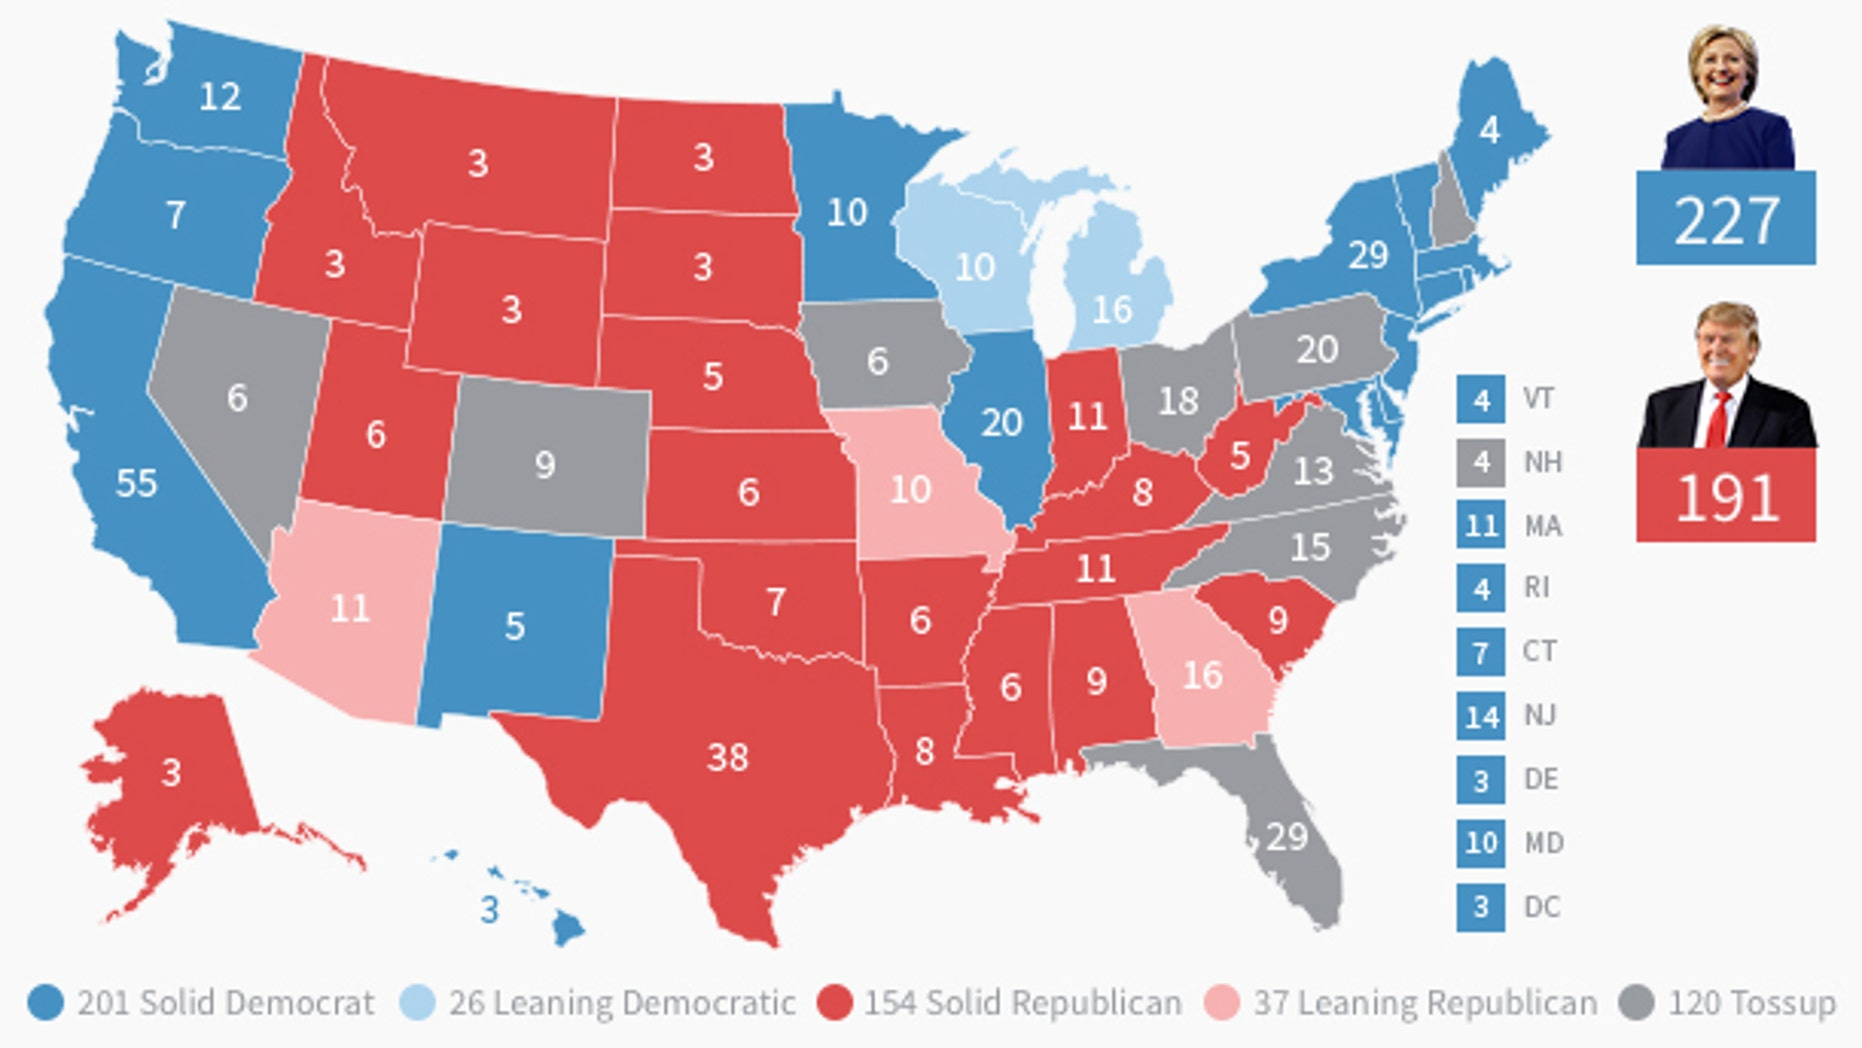 Fox News Electoral Map: Clinton has 2016 edge, but many toss ...